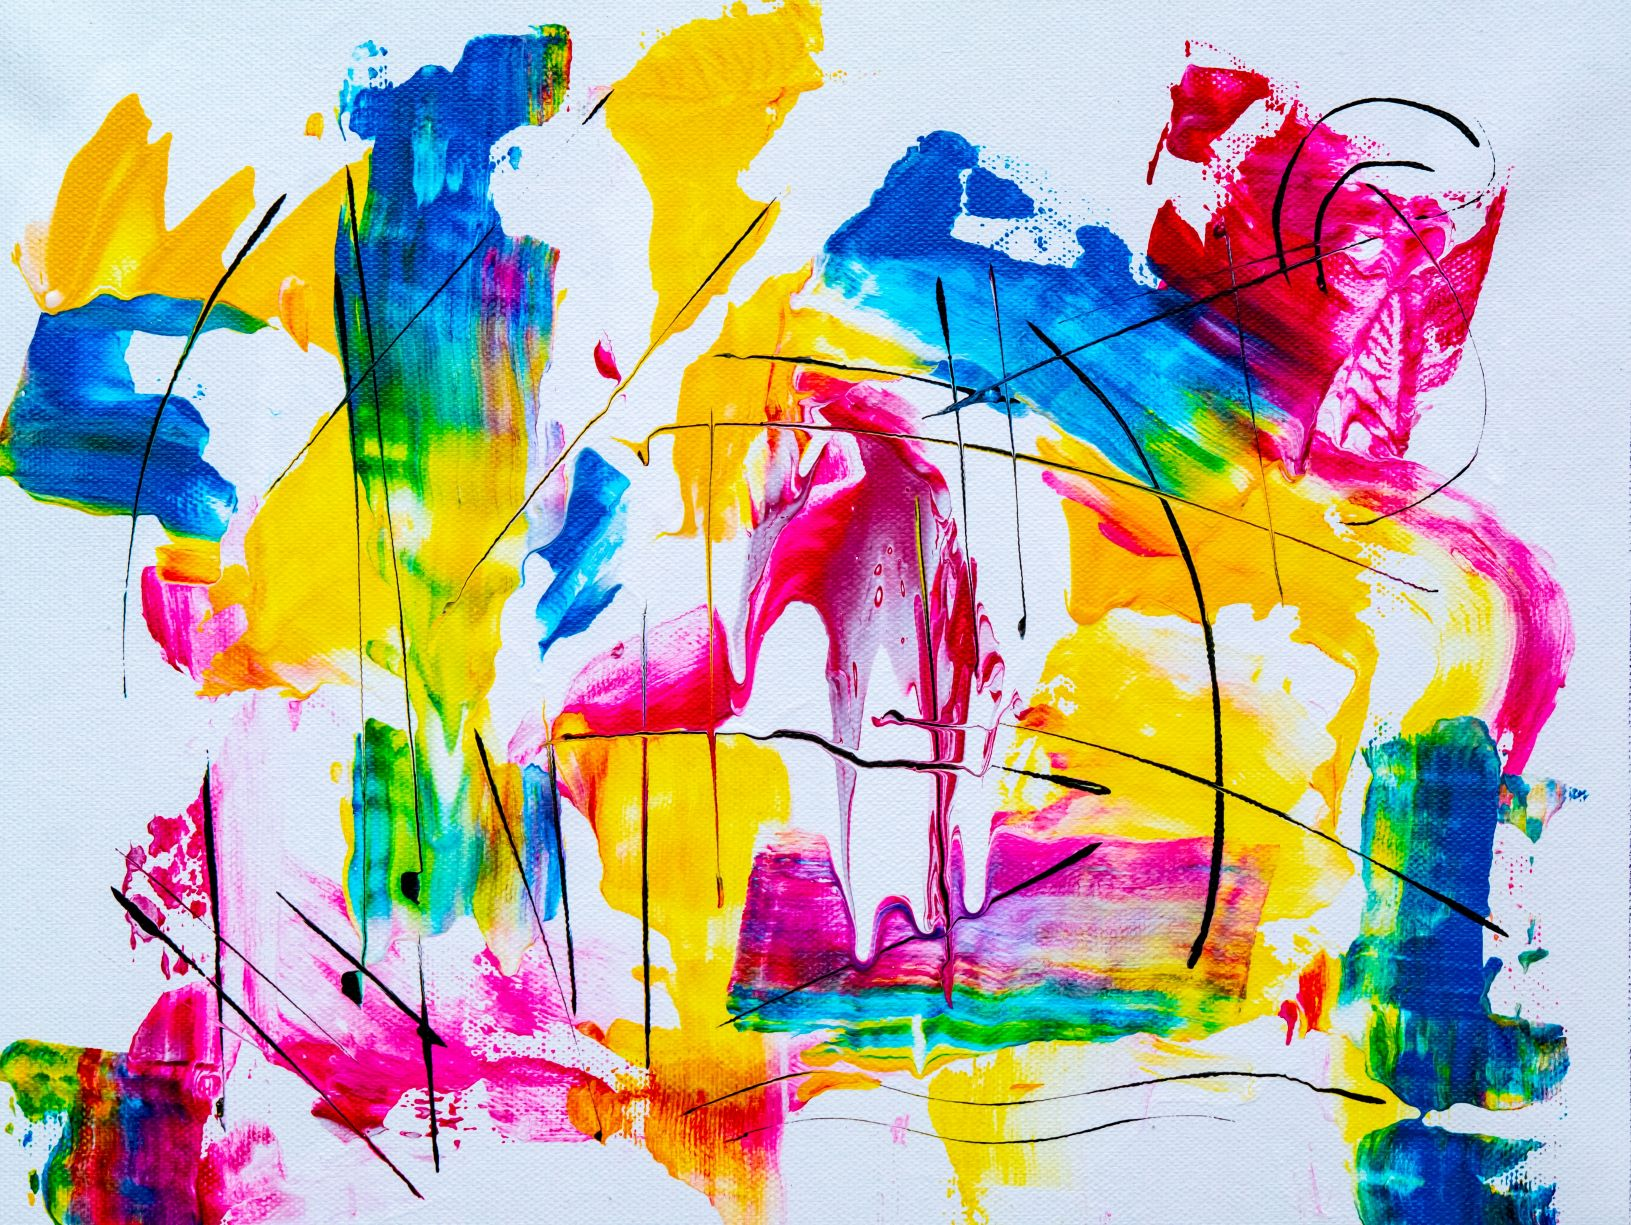 Colourful abstract canvas